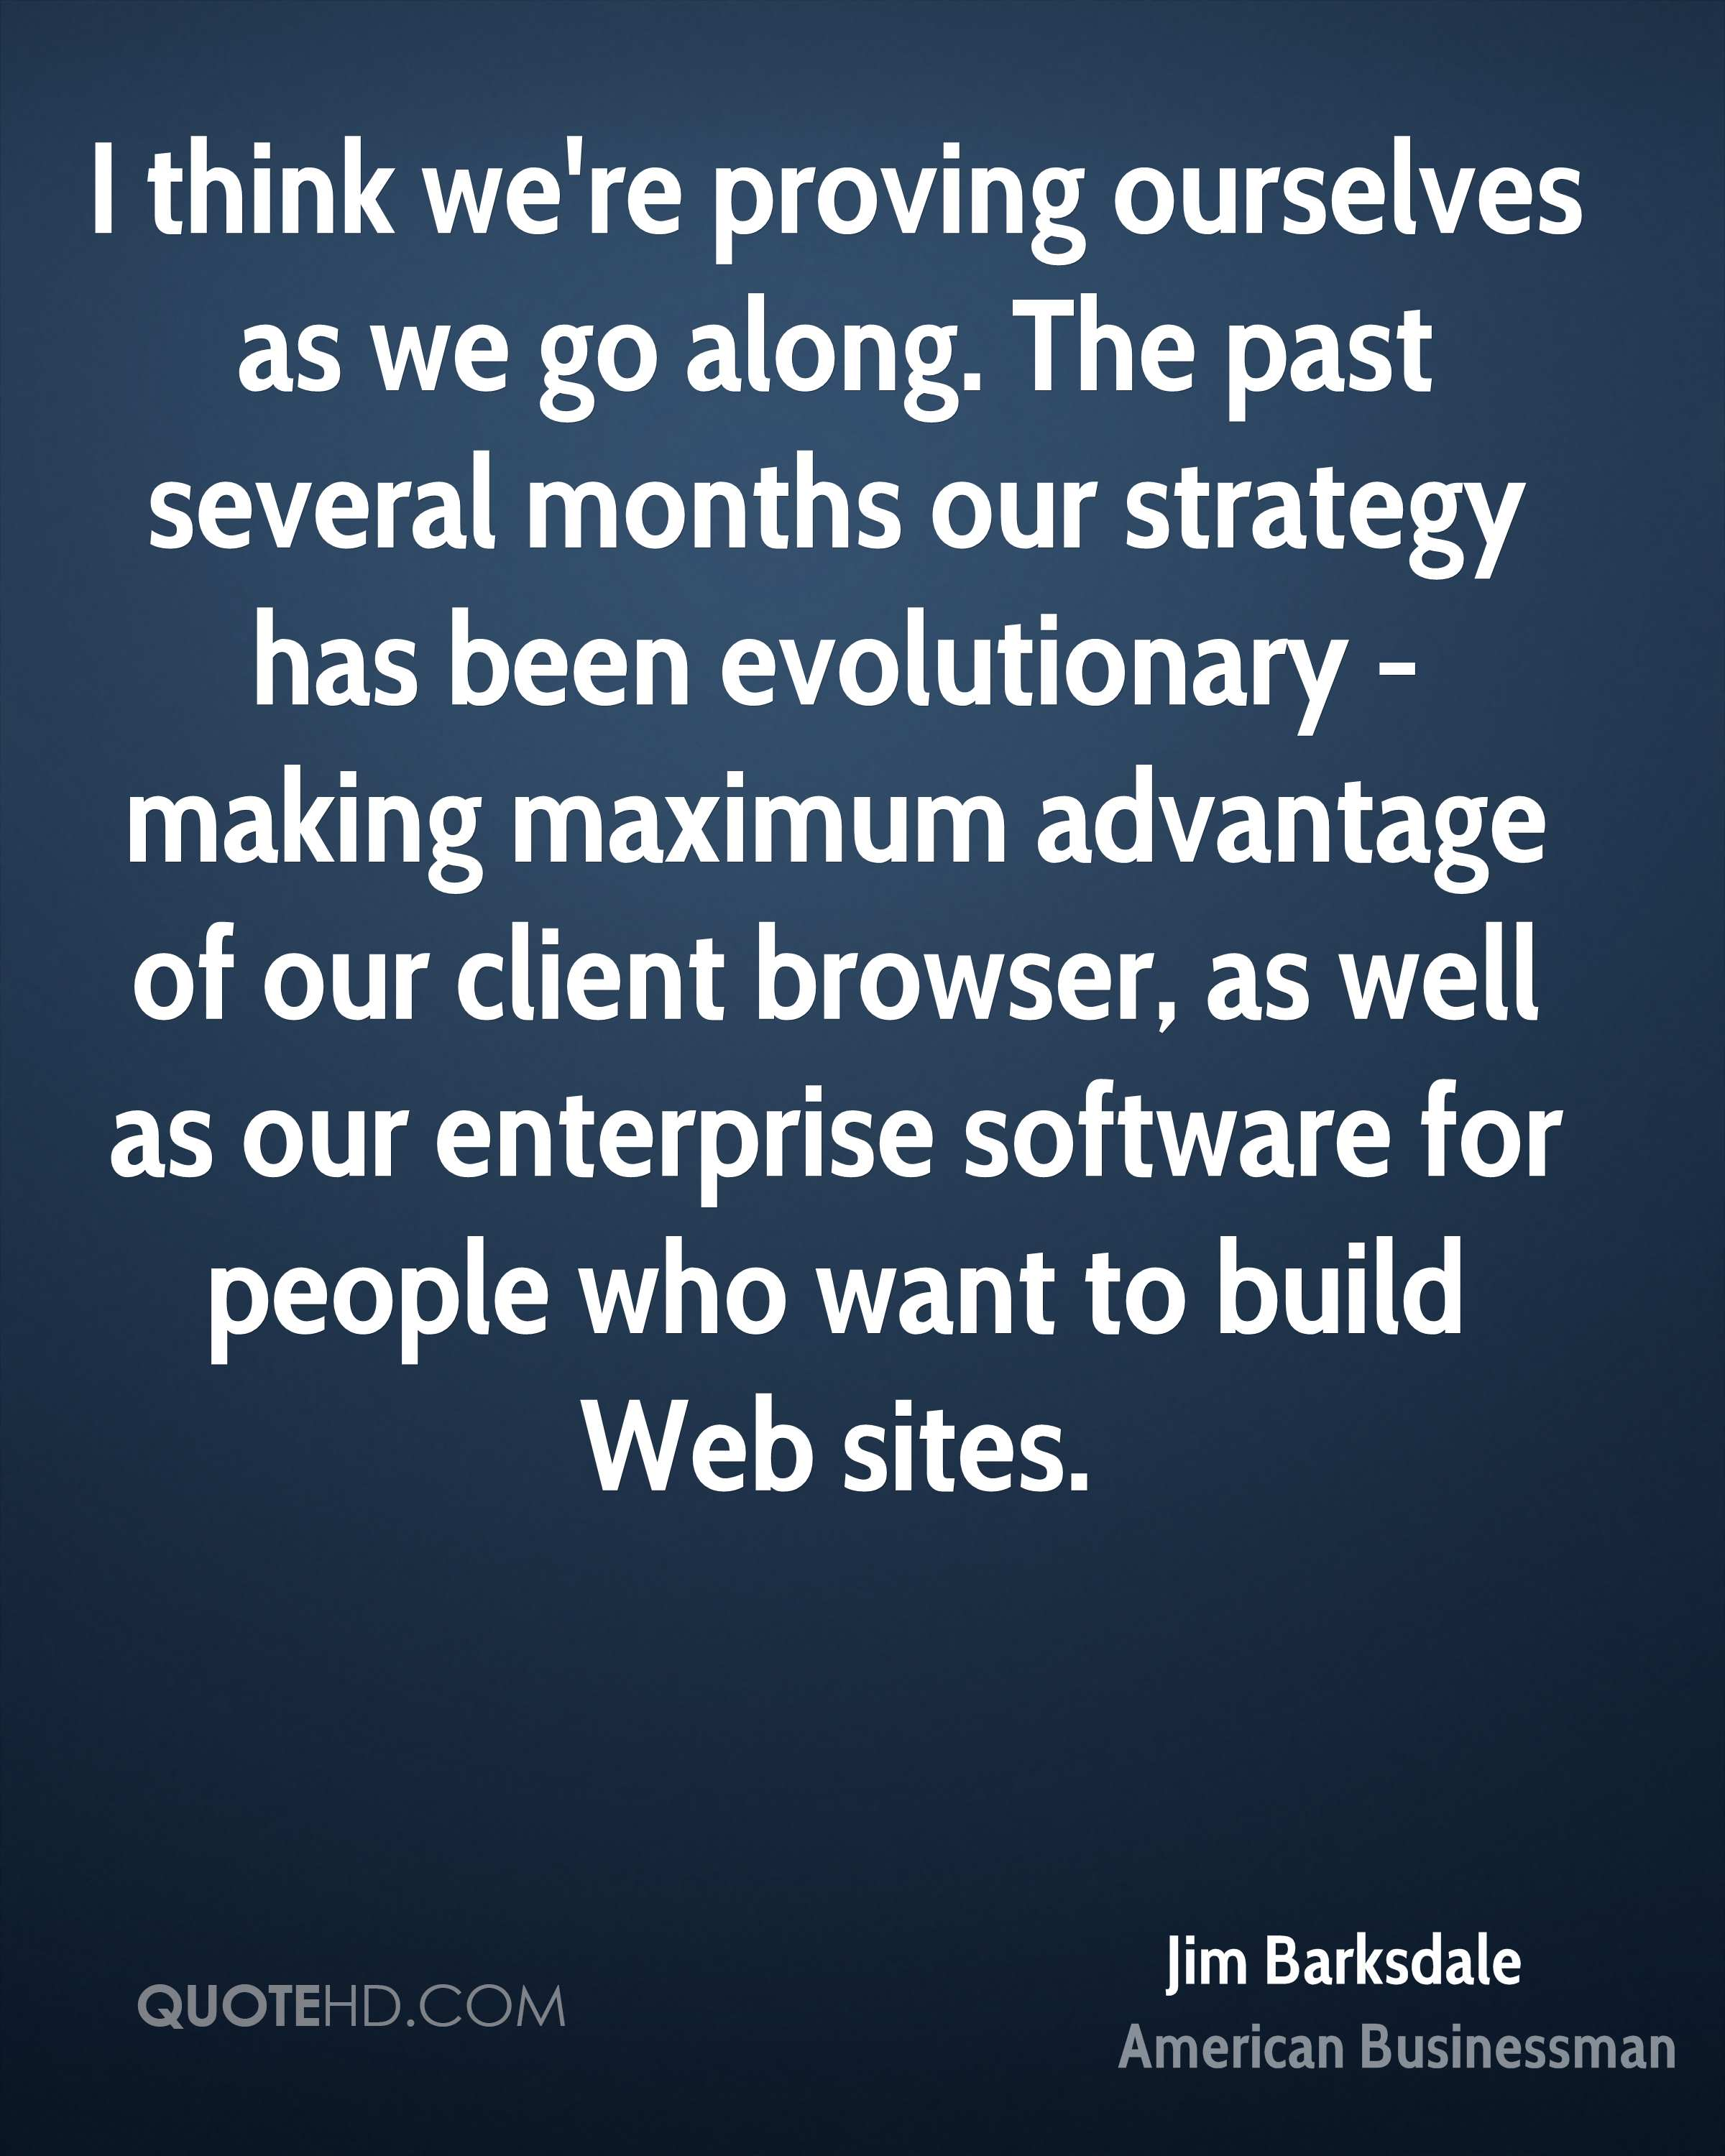 I think we're proving ourselves as we go along. The past several months our strategy has been evolutionary - making maximum advantage of our client browser, as well as our enterprise software for people who want to build Web sites.